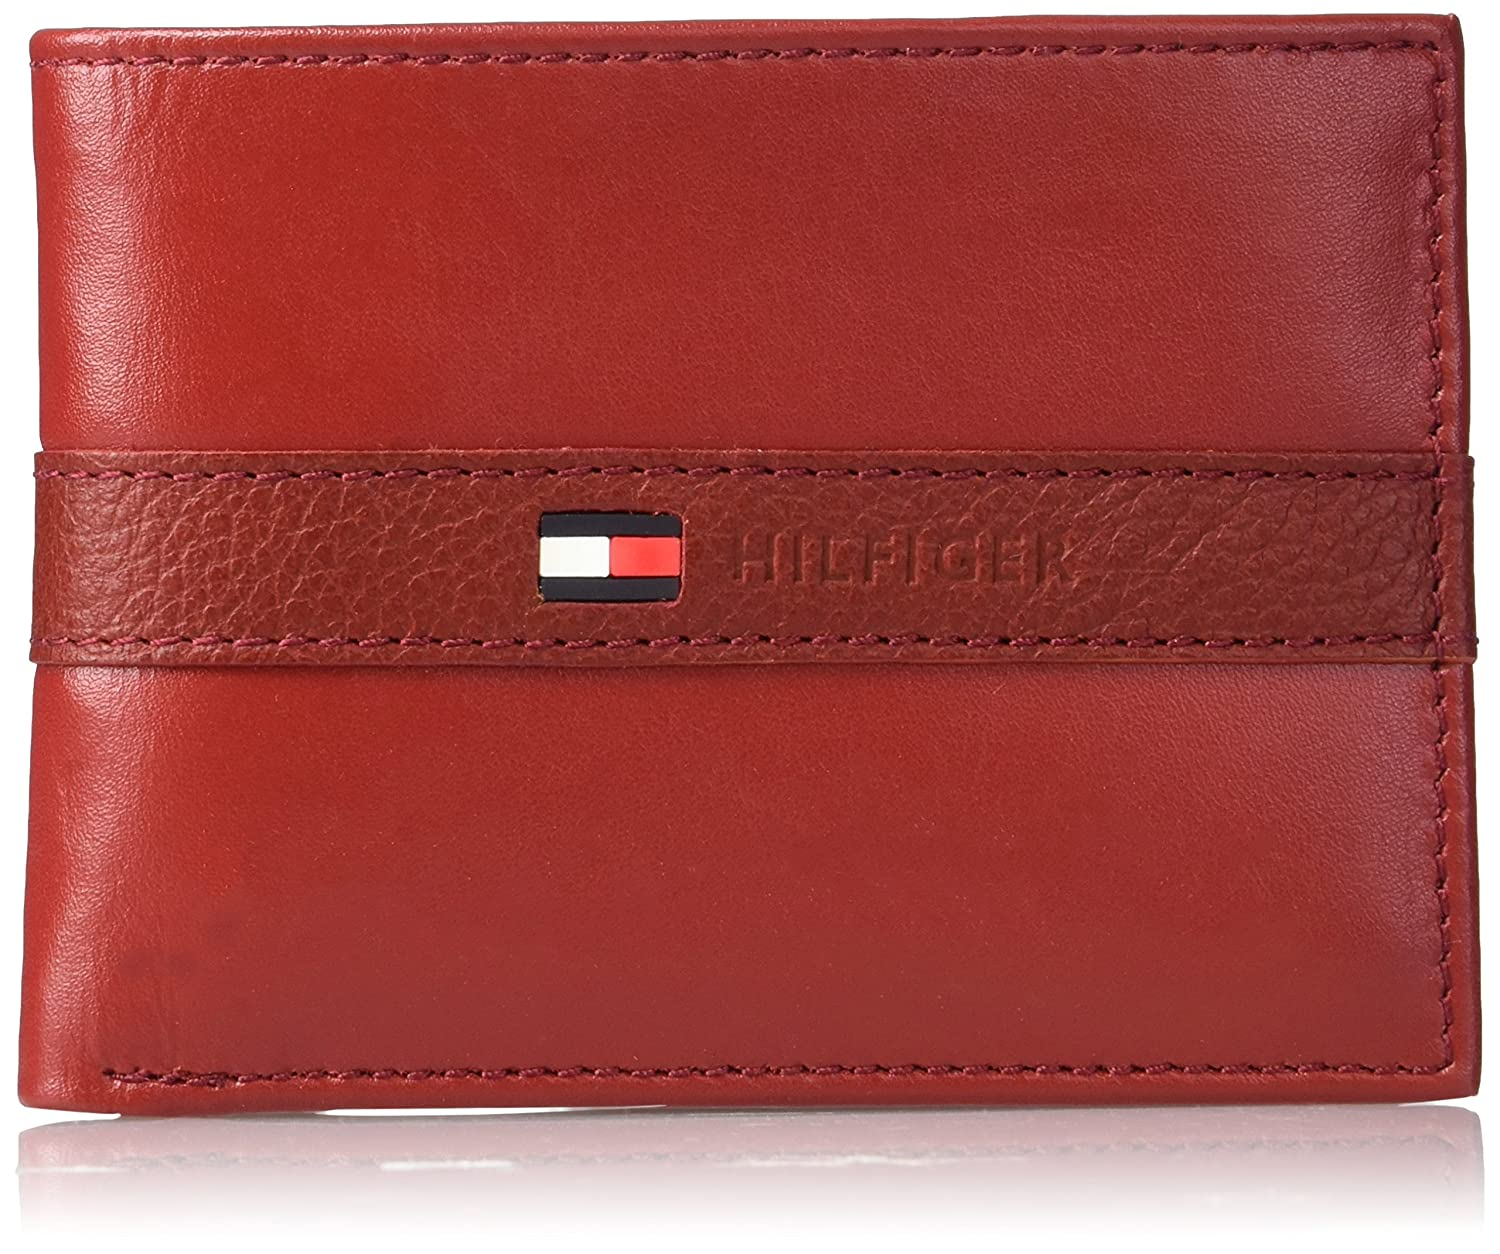 Tommy Hilfiger Men's Ranger Leather Passcase Wallet Black One Size Swank 31TL22X062